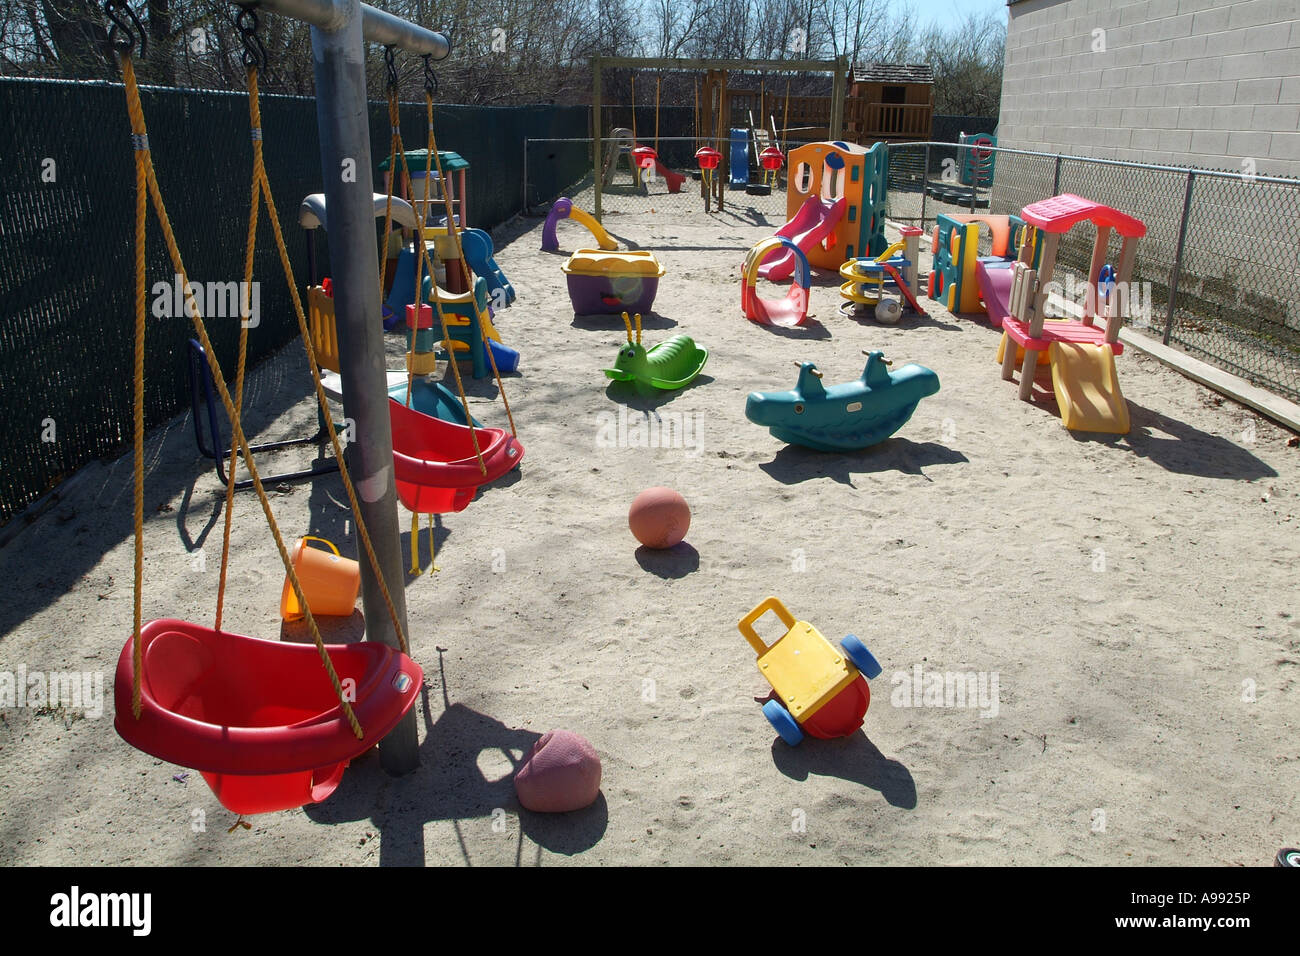 Toys For Day Care Centers : Childrens play area at a day care center with toys stock